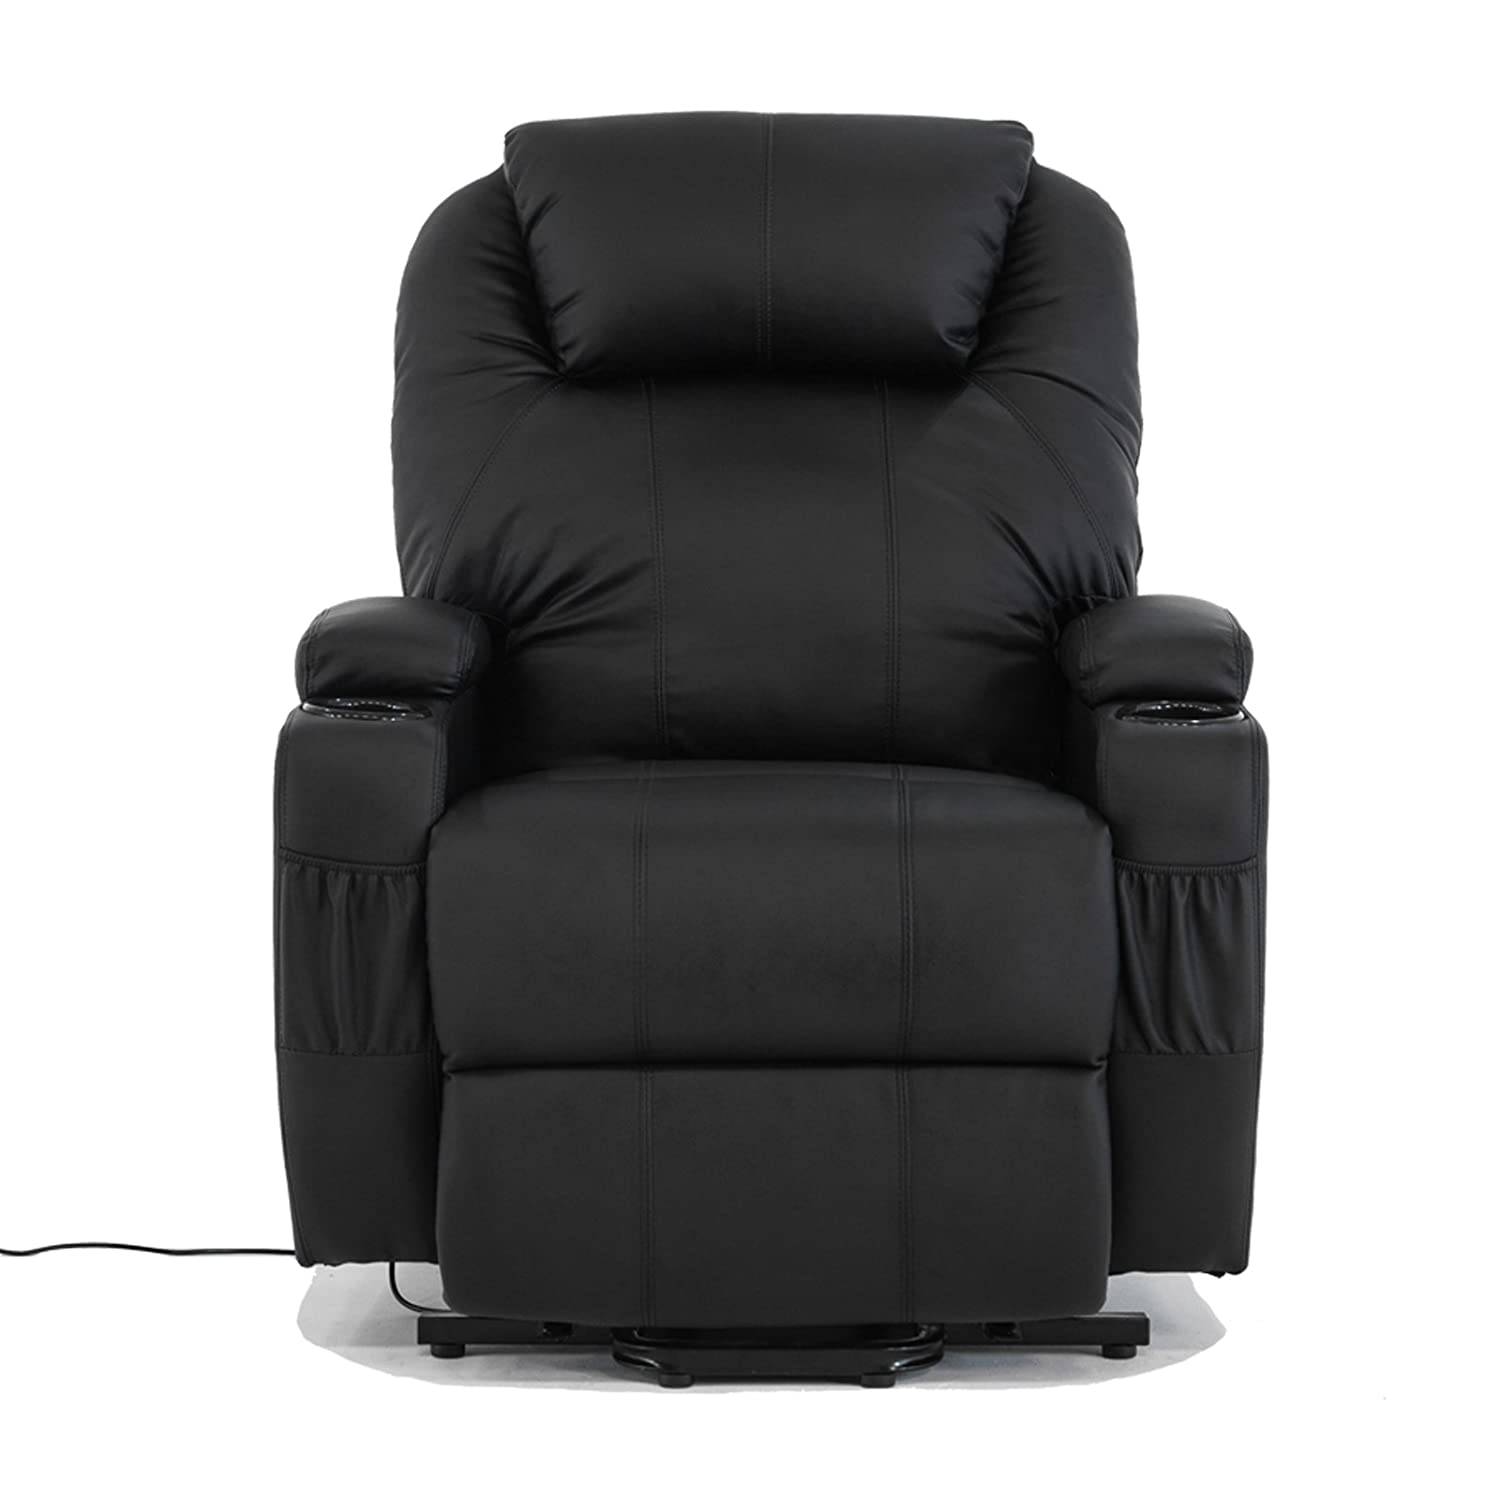 Amazon.com Power Lift Real Leather Recliner chair Wall Hugger Lounge Seat Black Kitchen u0026 Dining  sc 1 st  Amazon.com : motorised recliner armchairs - islam-shia.org